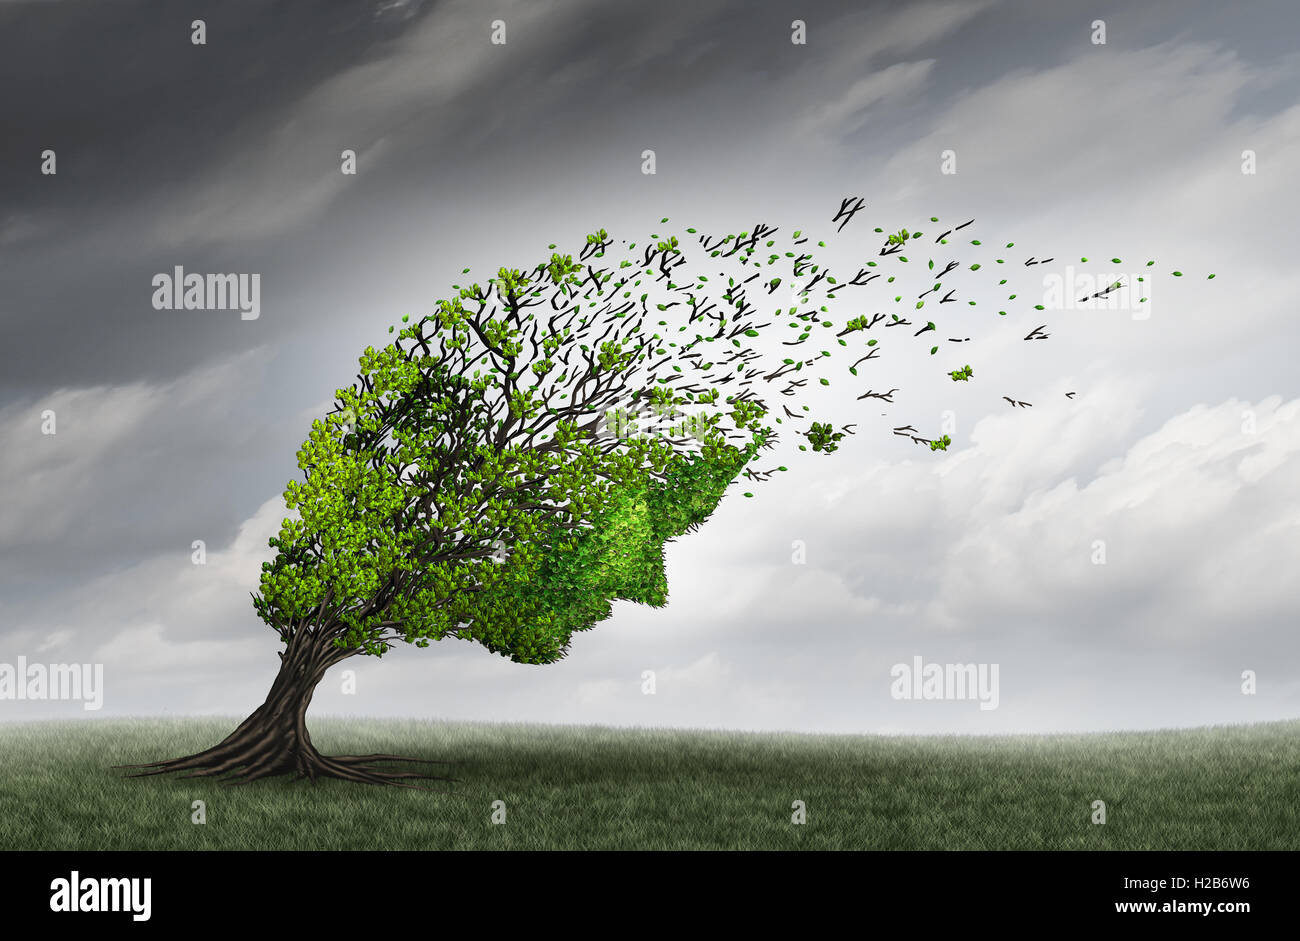 Psychological trouble and mental health adversity crisis as a tree shaped as a human head being torn or stressed - Stock Image